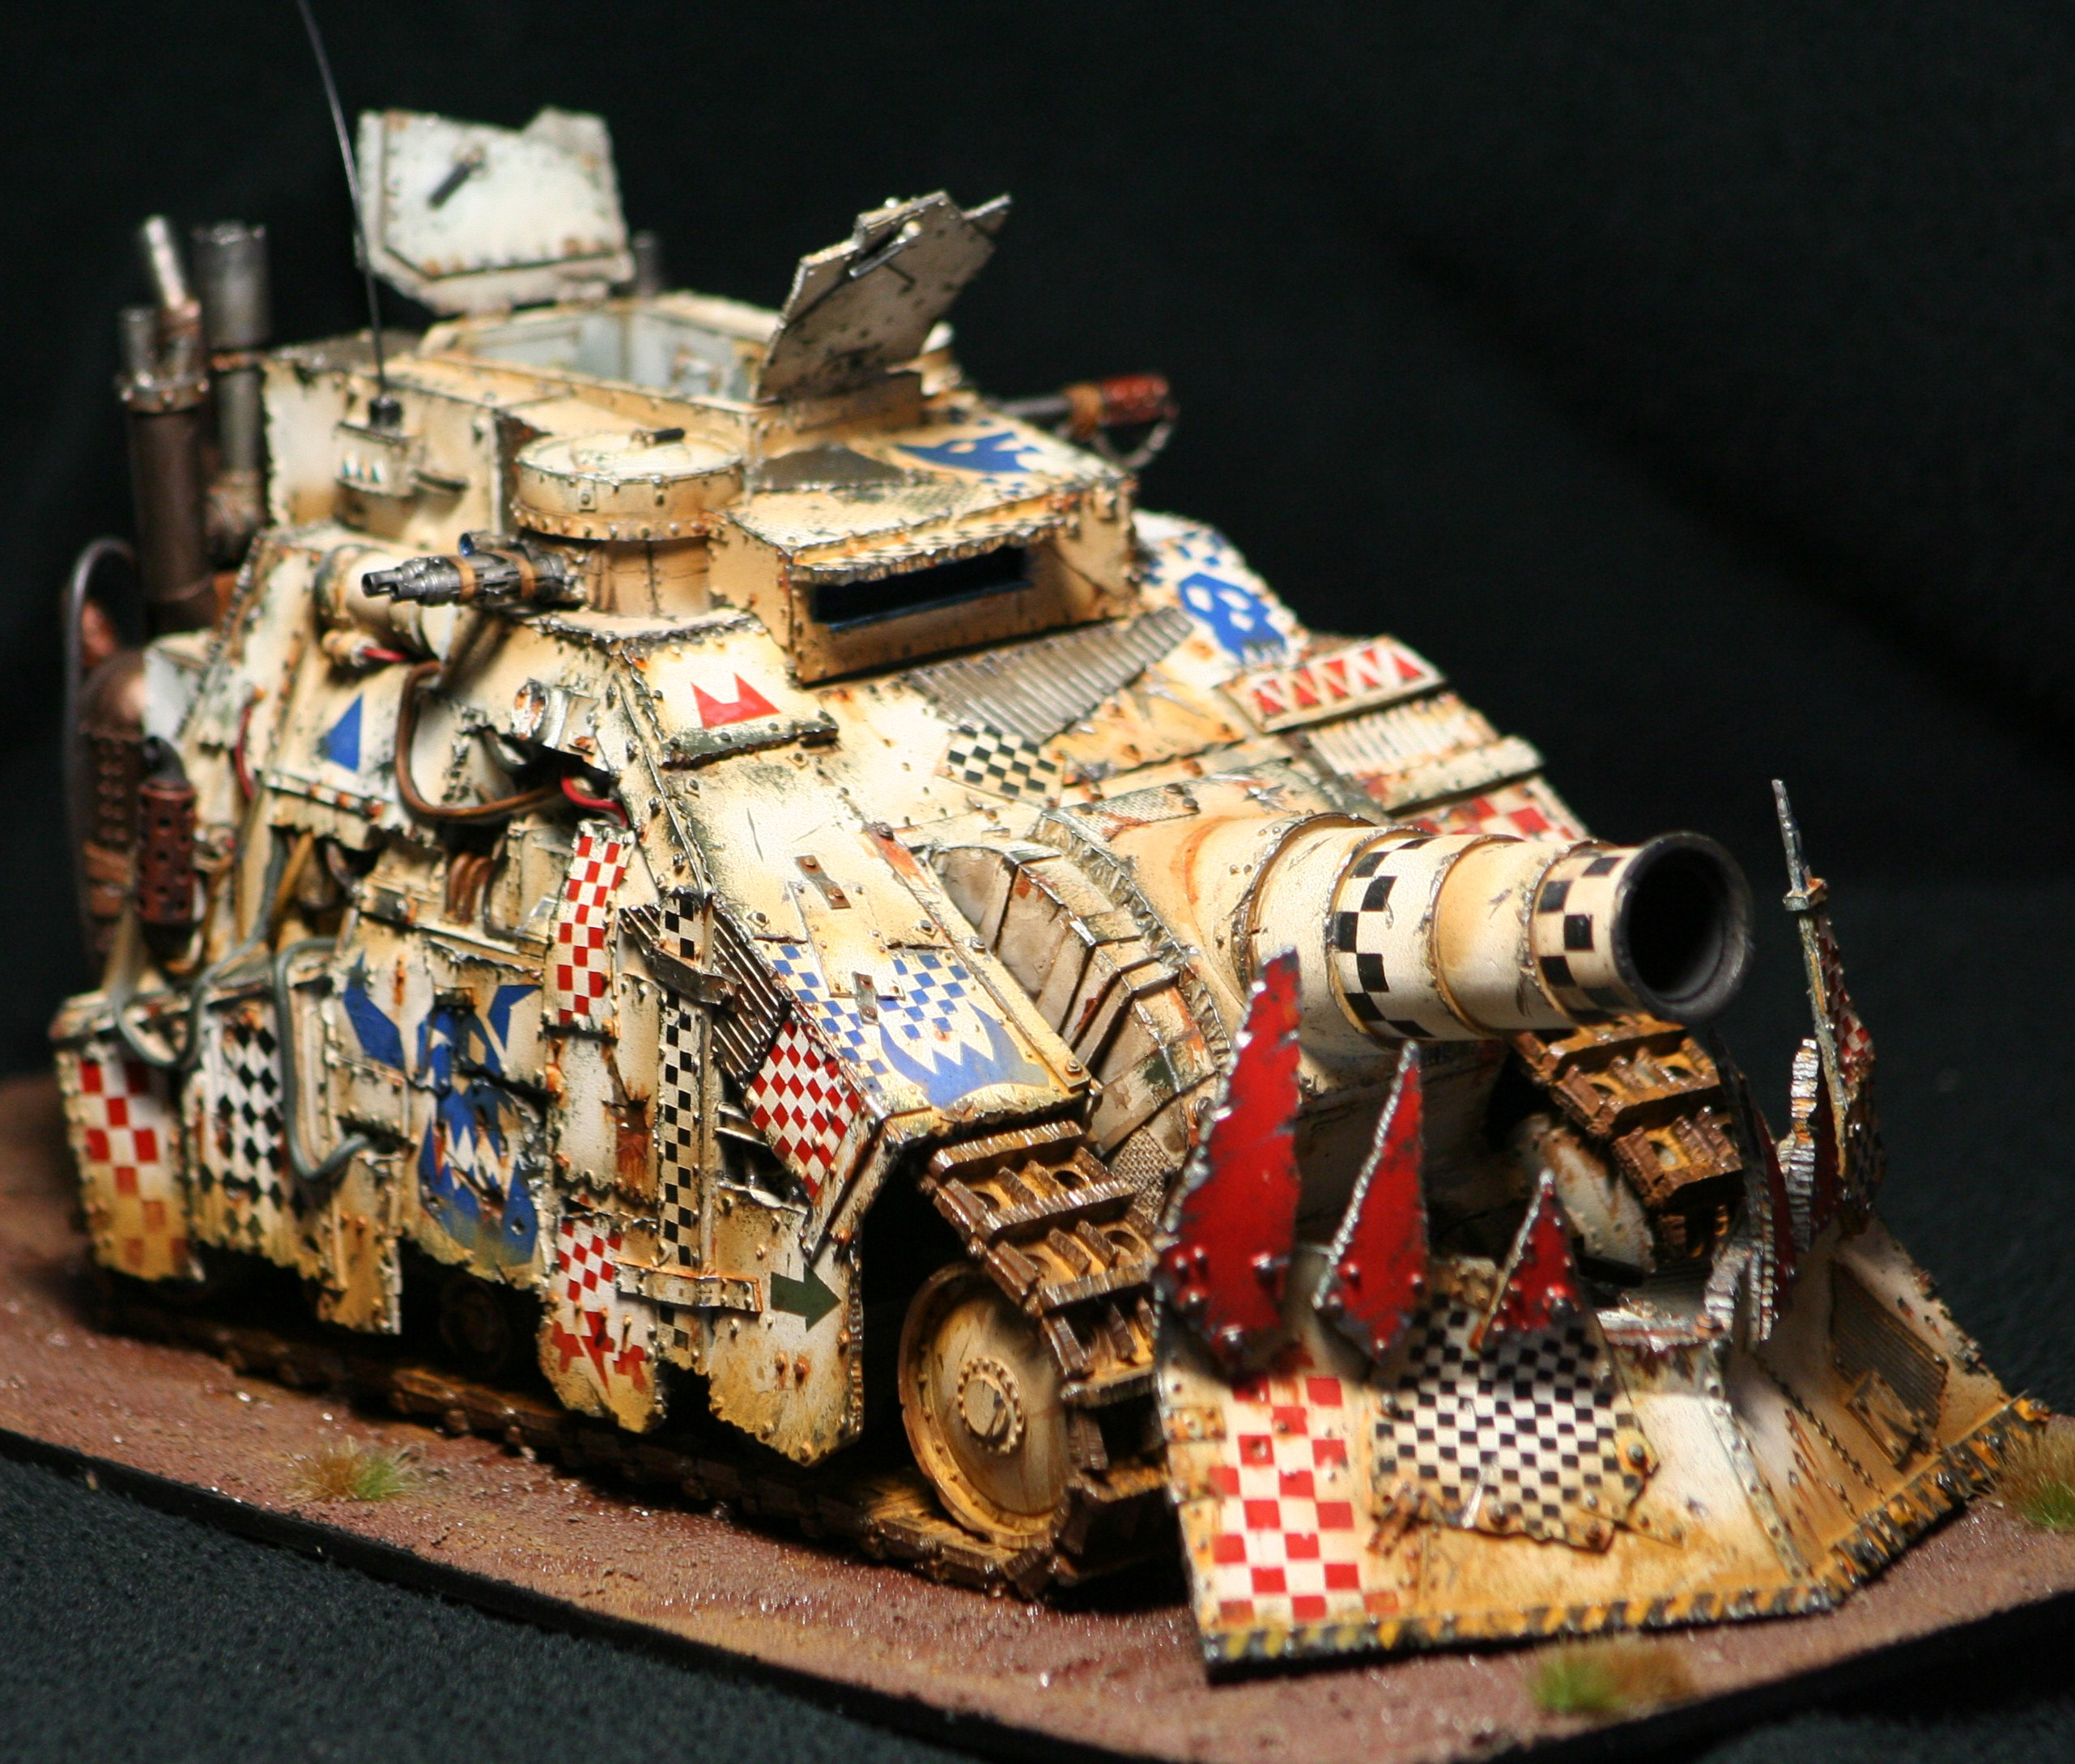 ORK KILL BURSTA TANK